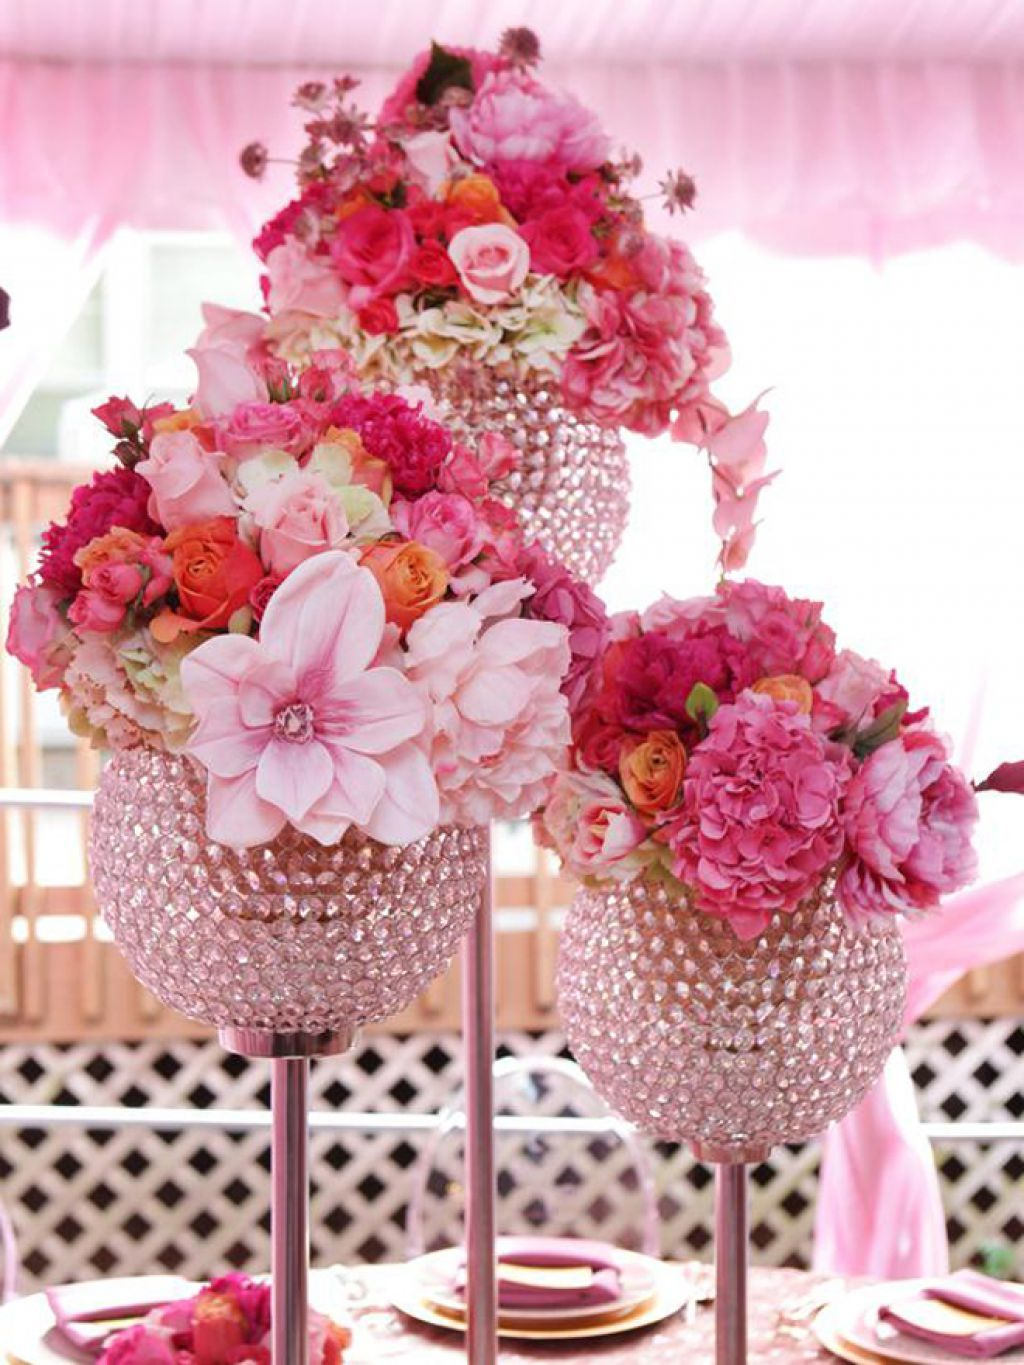 Wedding flowers ideas beautiful pink wedding flower centerpieces wedding flowers ideas beautiful pink wedding flower centerpieces with crystal vase combined with light pink roses and elegant white lily beautiy the mightylinksfo